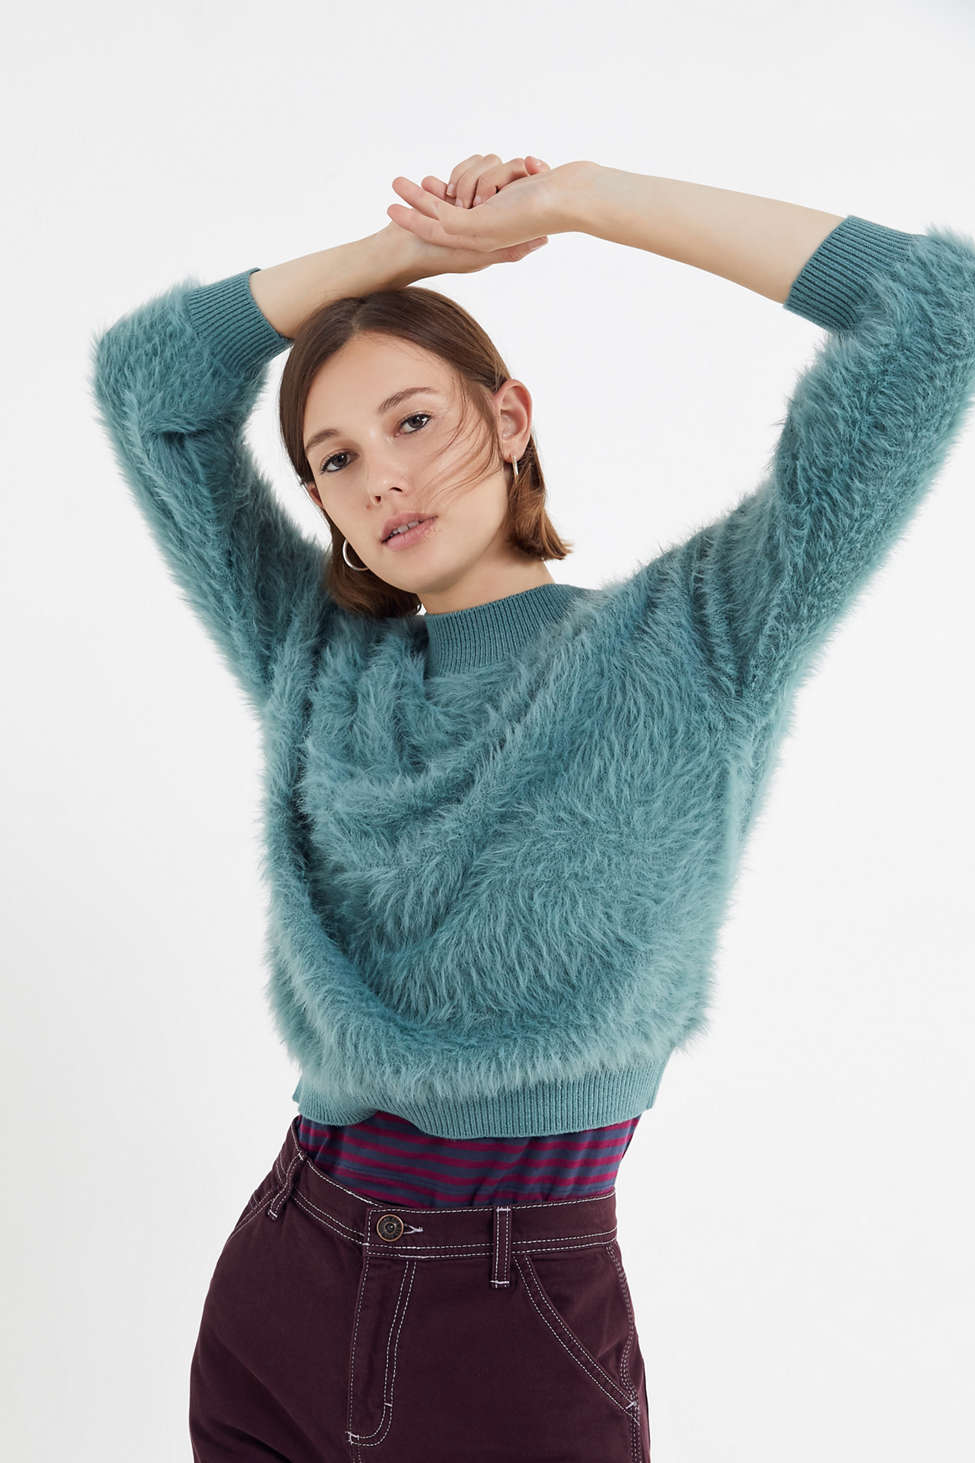 Uo Sweet As A Peach Fuzzy Mock Neck Sweater Urban Outfitters